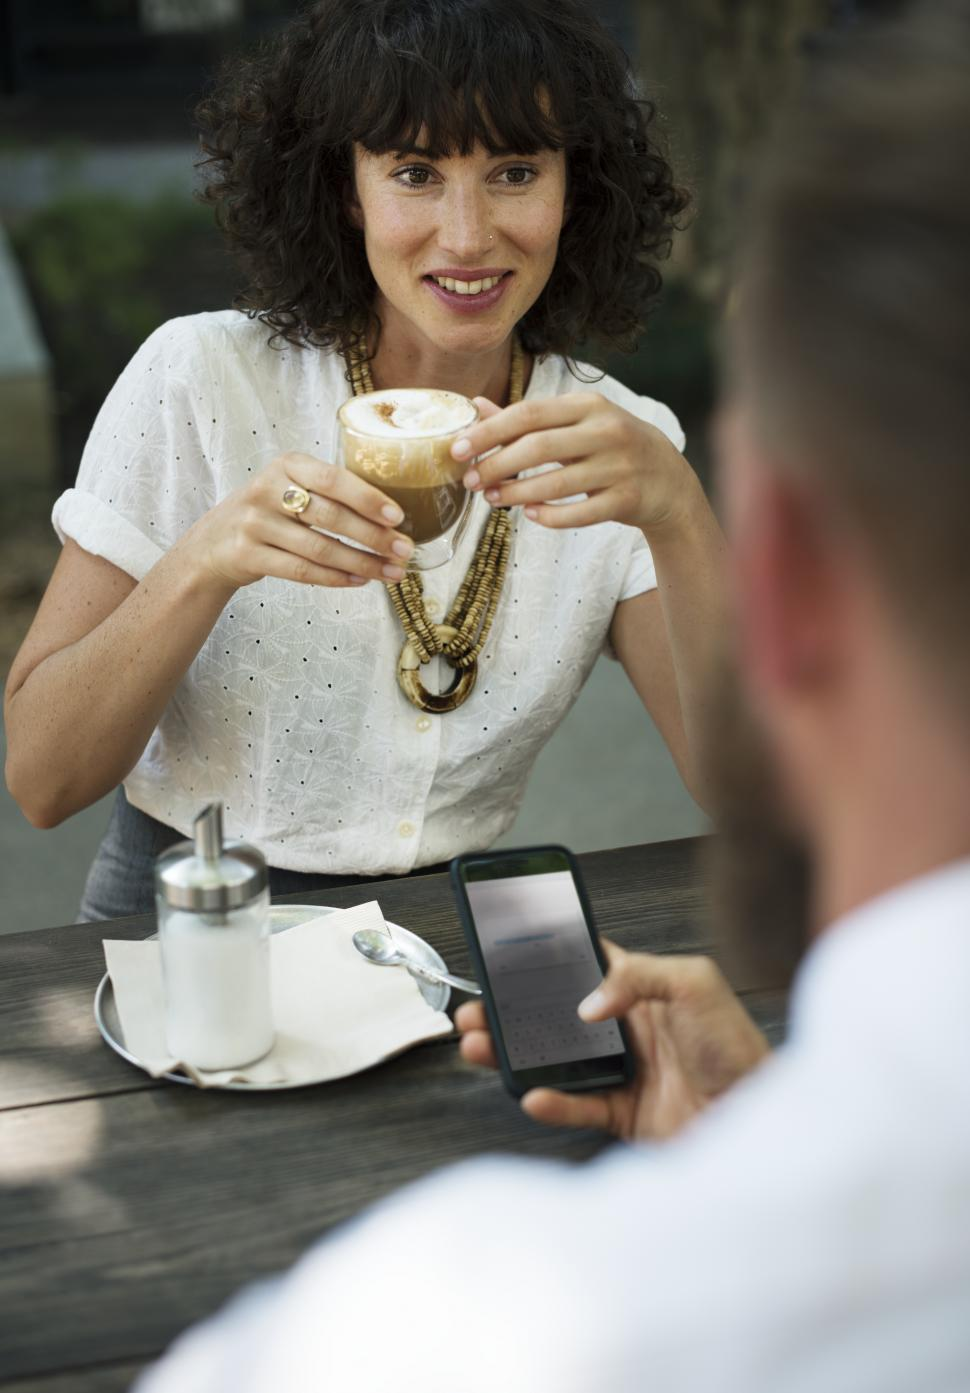 Download Free Stock Photo of Close up of two people having a discussion at an outdoor restaurant table